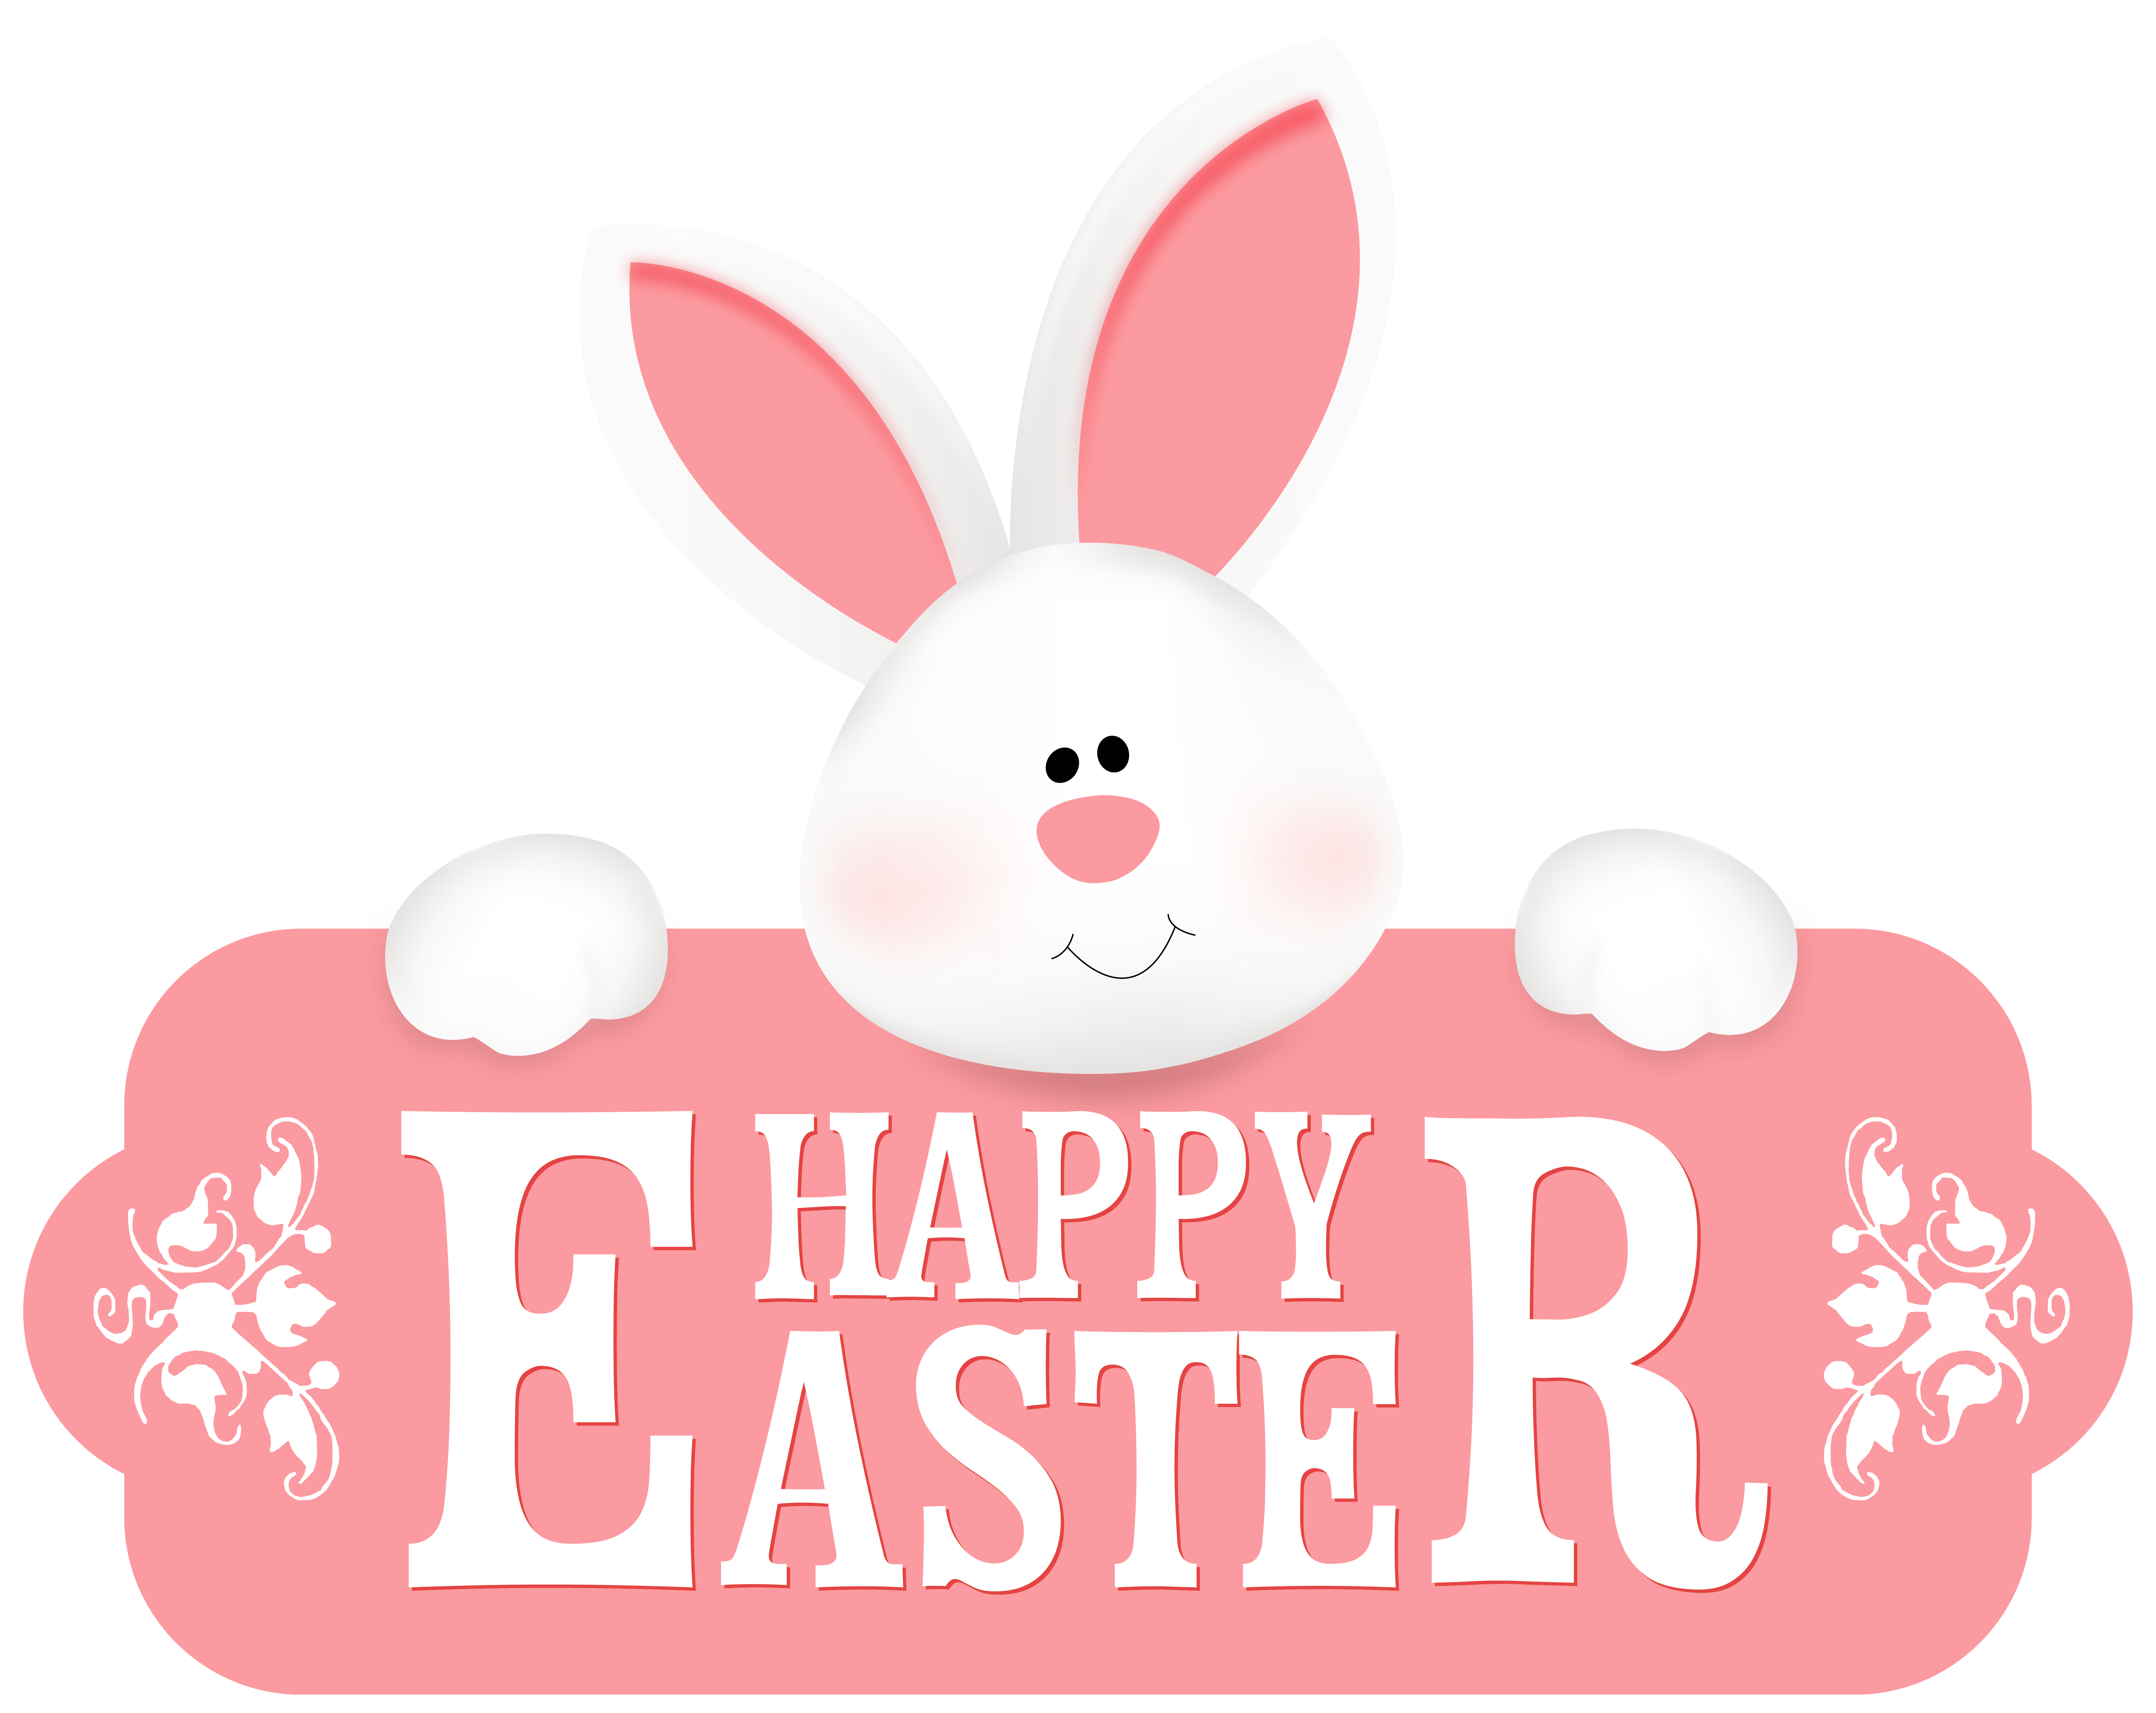 Happy easter pictures clipart image black and white library Happy easter with bunny clipart image - ClipartBarn image black and white library